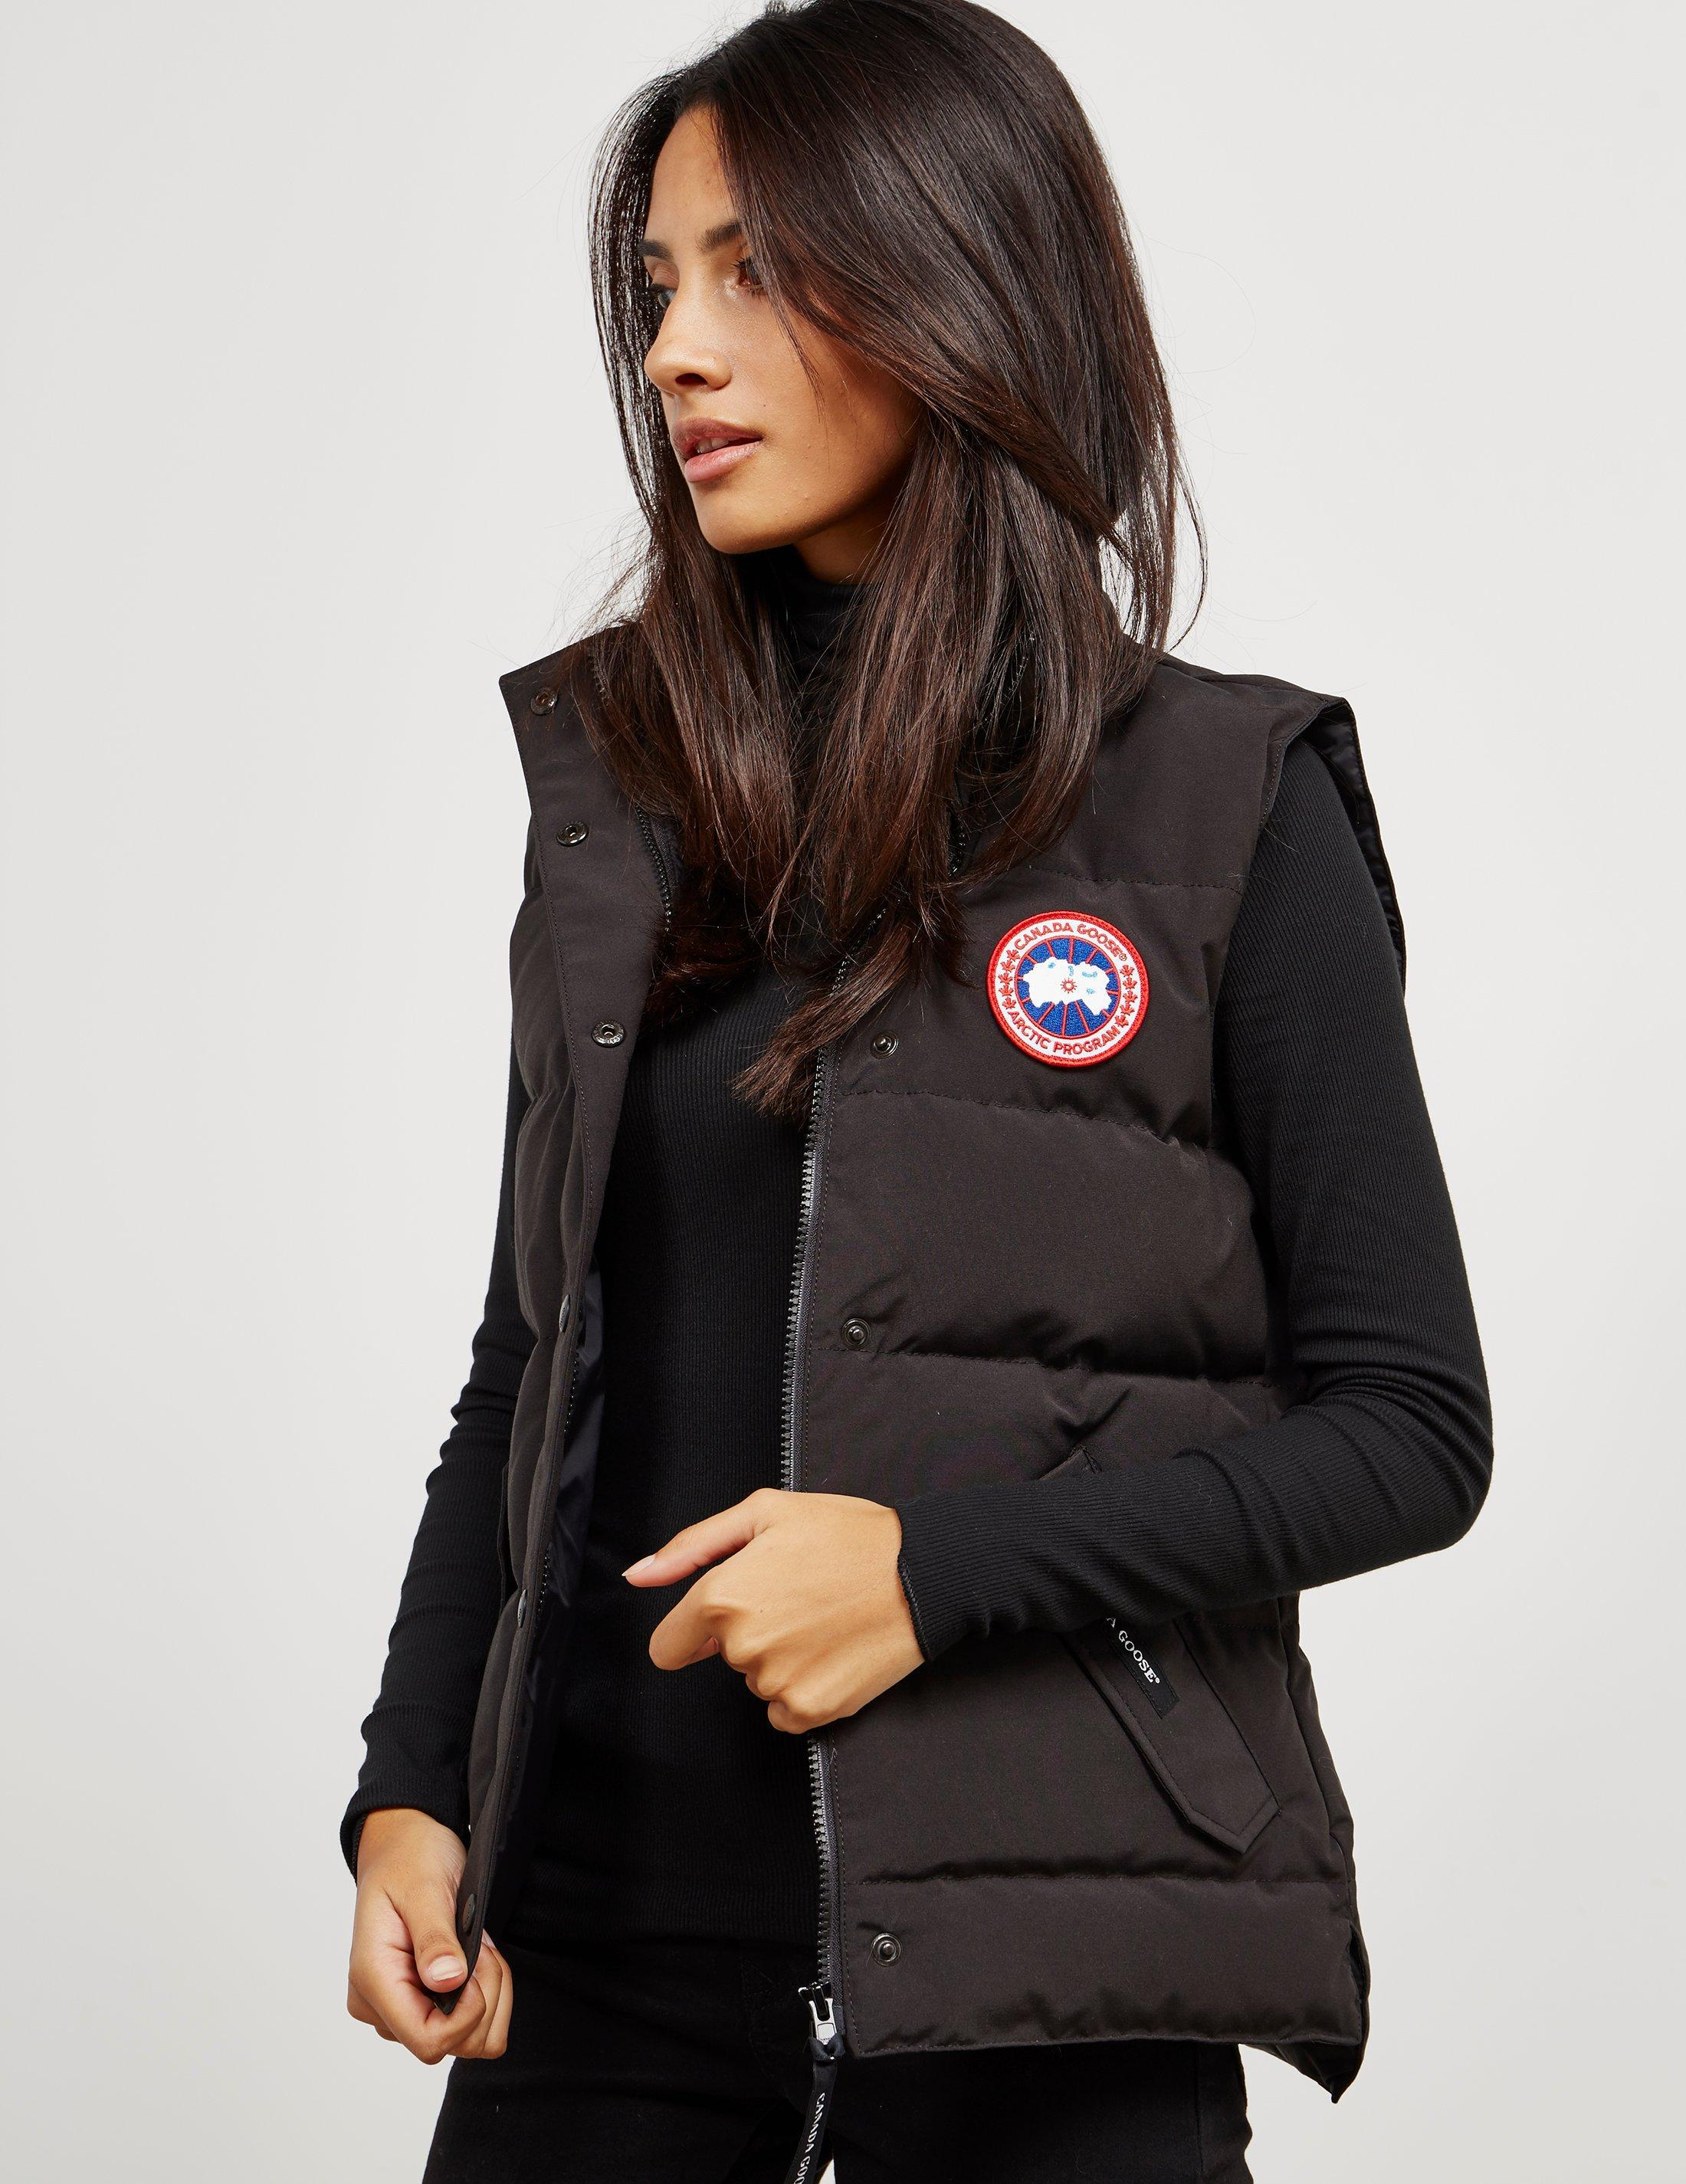 c5af2b3bc5836 ... get lyst canada goose womens freestyle padded gilet black in black  a0778 37ff7 ...